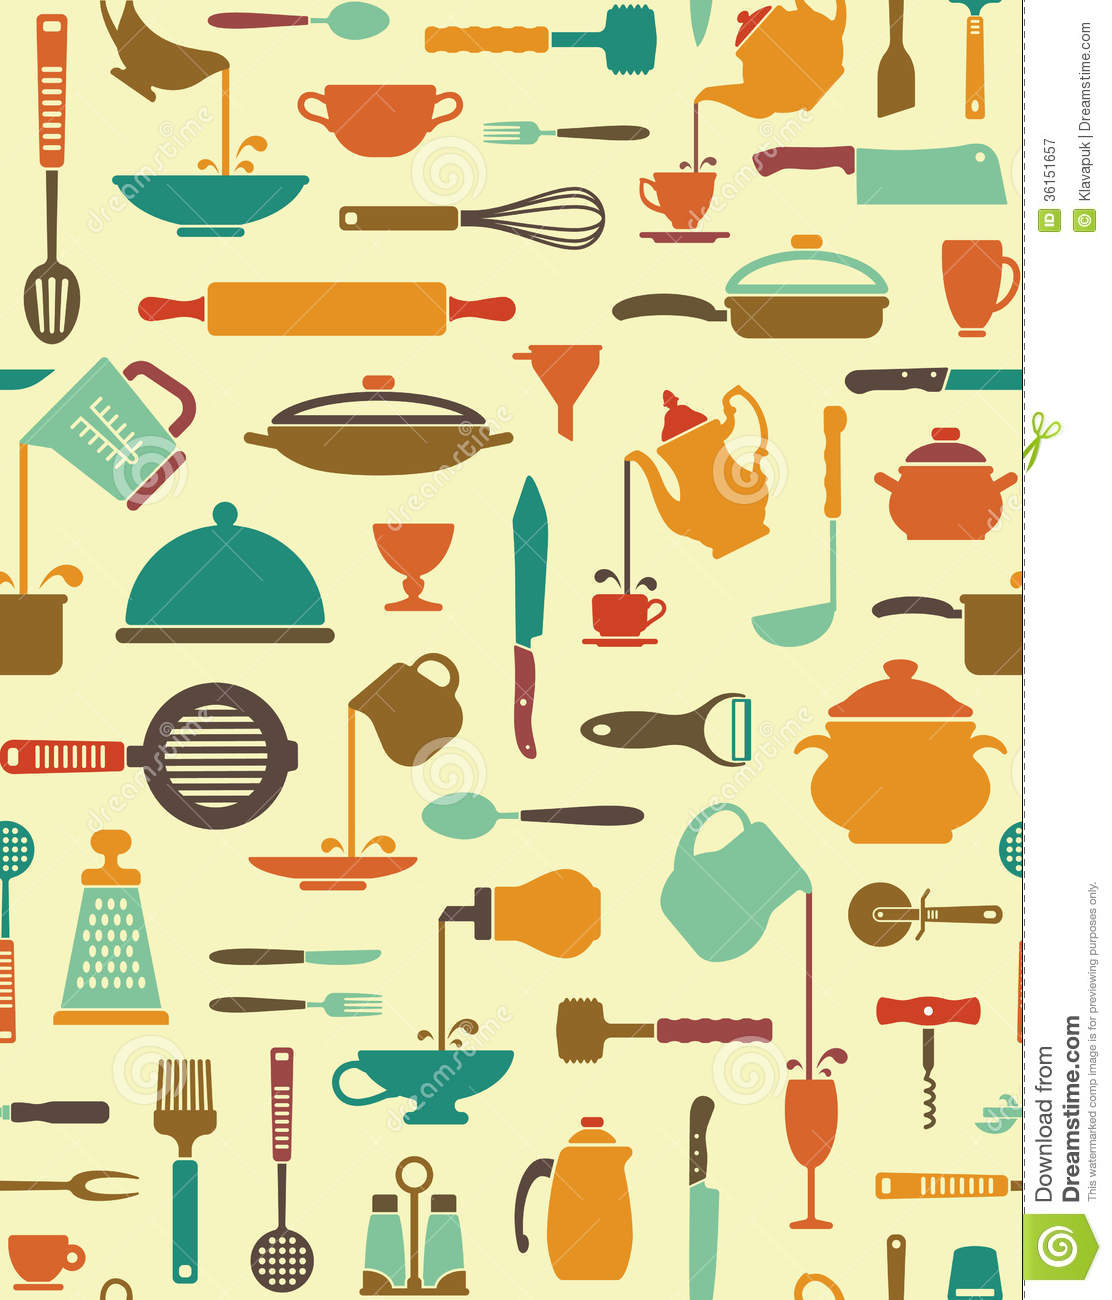 Kitchen Utensils Background: Cooking Background Stock Vector. Image Of Equipment